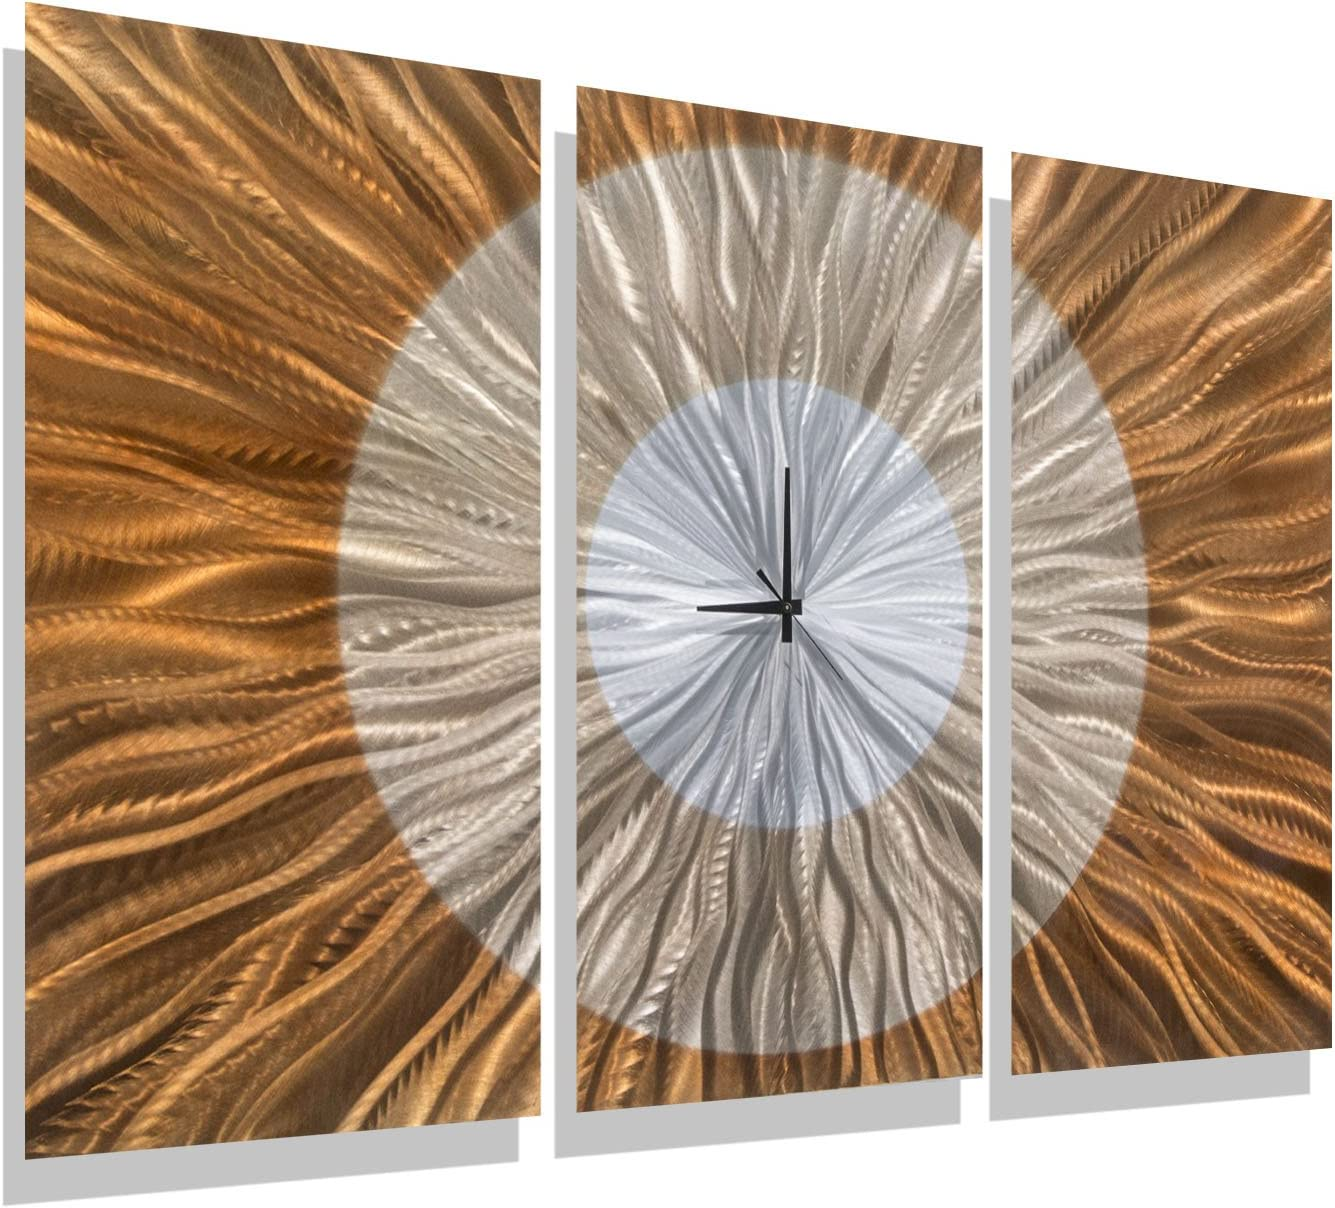 Statements2000 Large Contemporary Wall Clock with Orange, Gold and Amber Jewel Tone Fusion - Modern Metal Wall Art Home Accent - Hanging Wall Clock - Afterglow Clock by Jon Allen - 38-inch